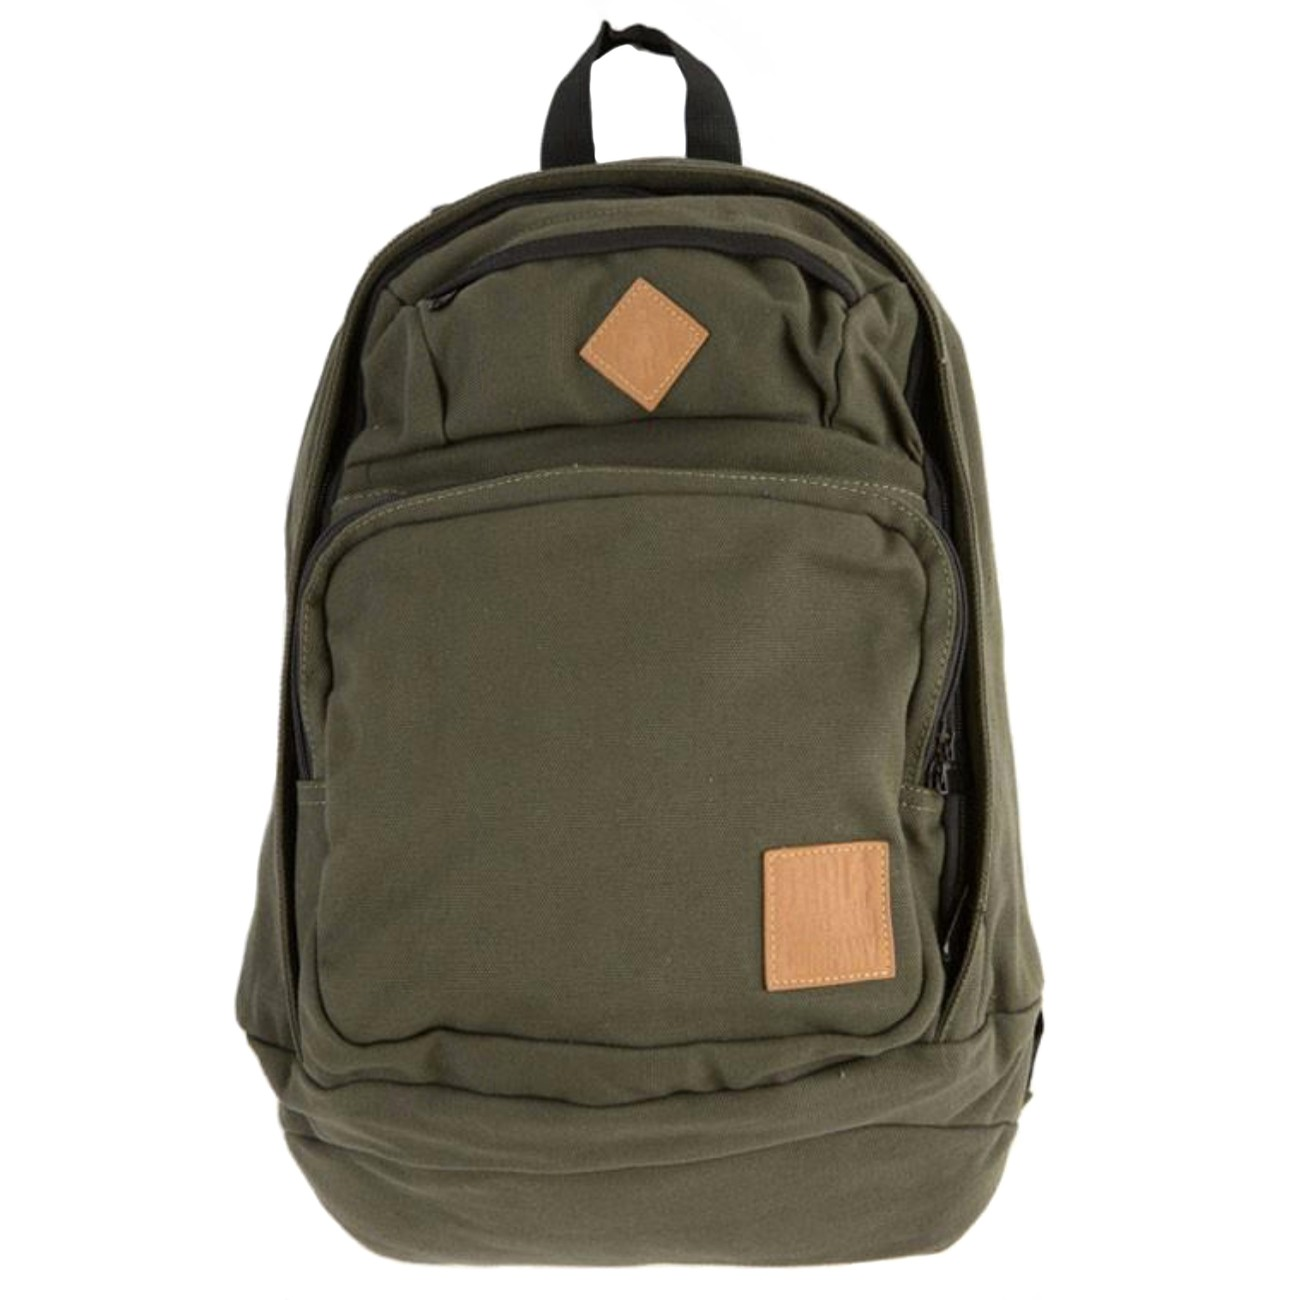 Simple Backpack #2 (Army Green)